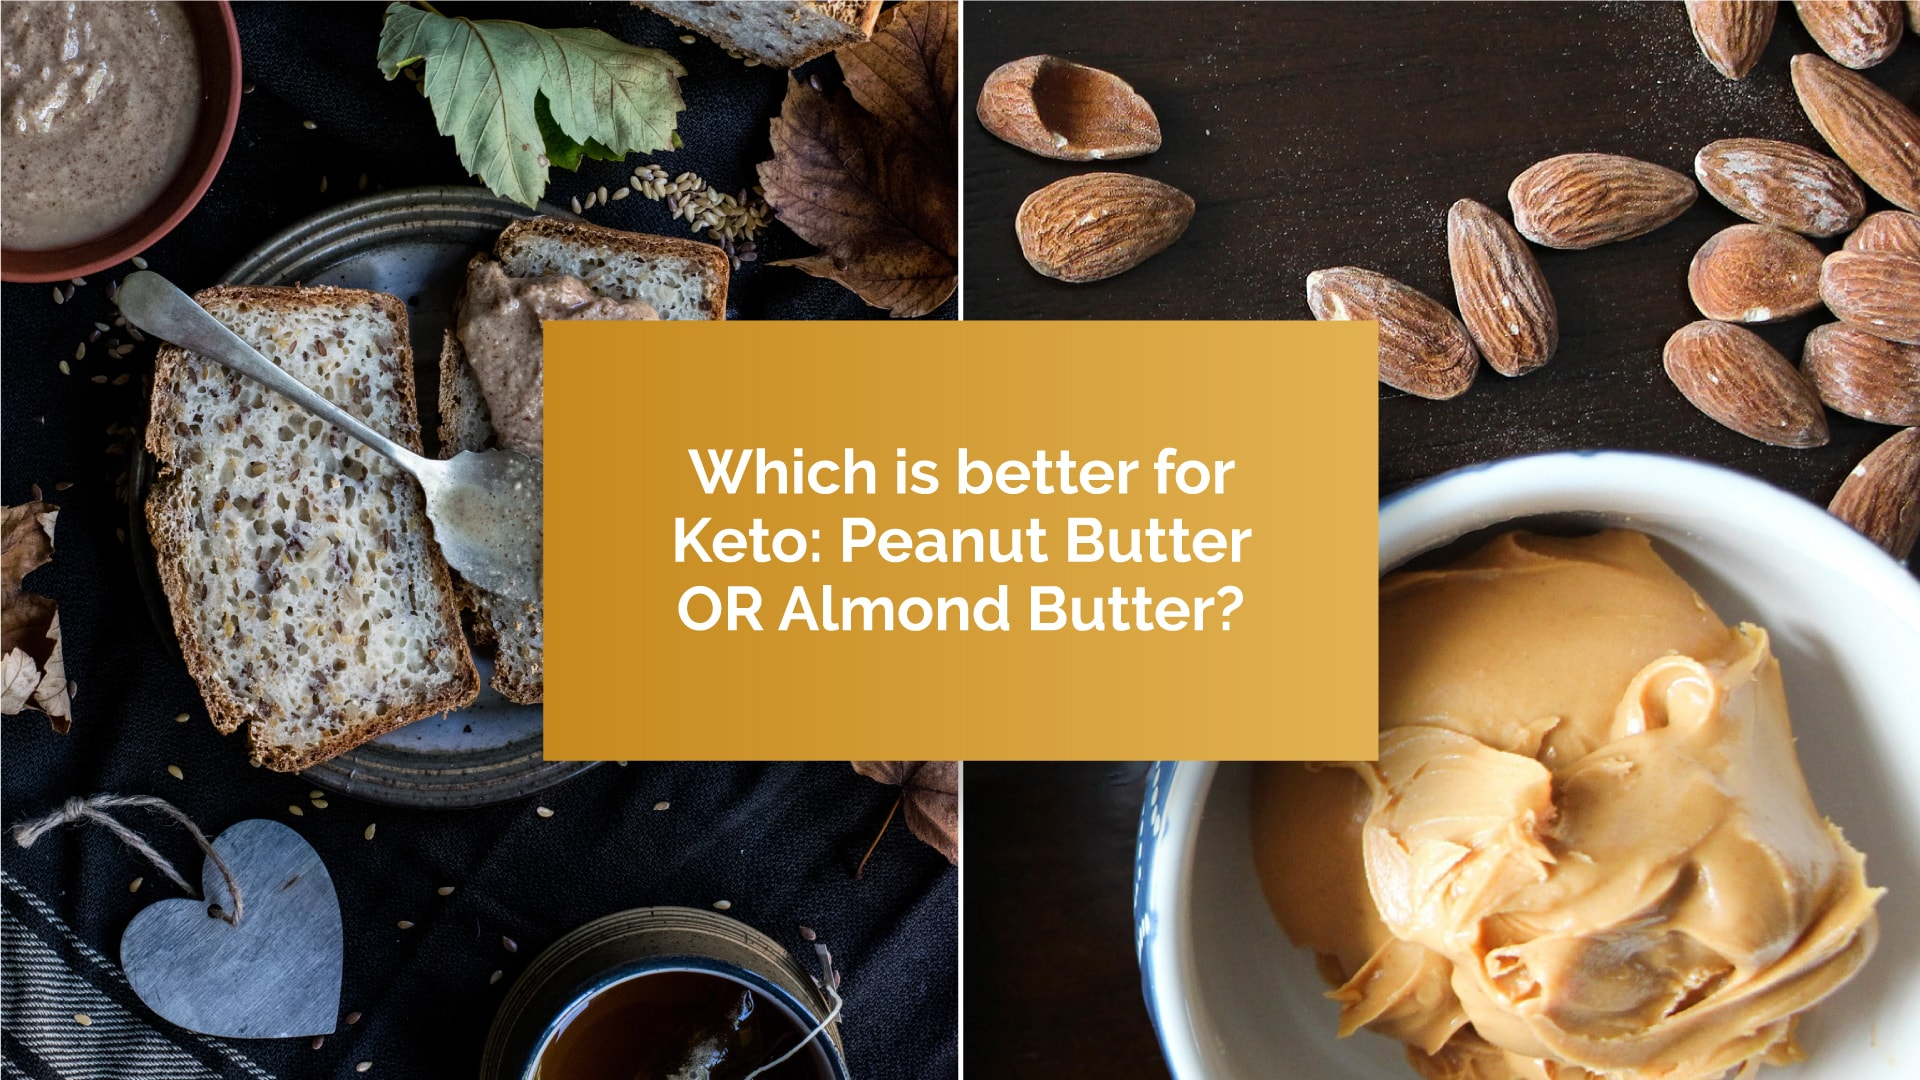 Peanut Butter OR Almond Butter